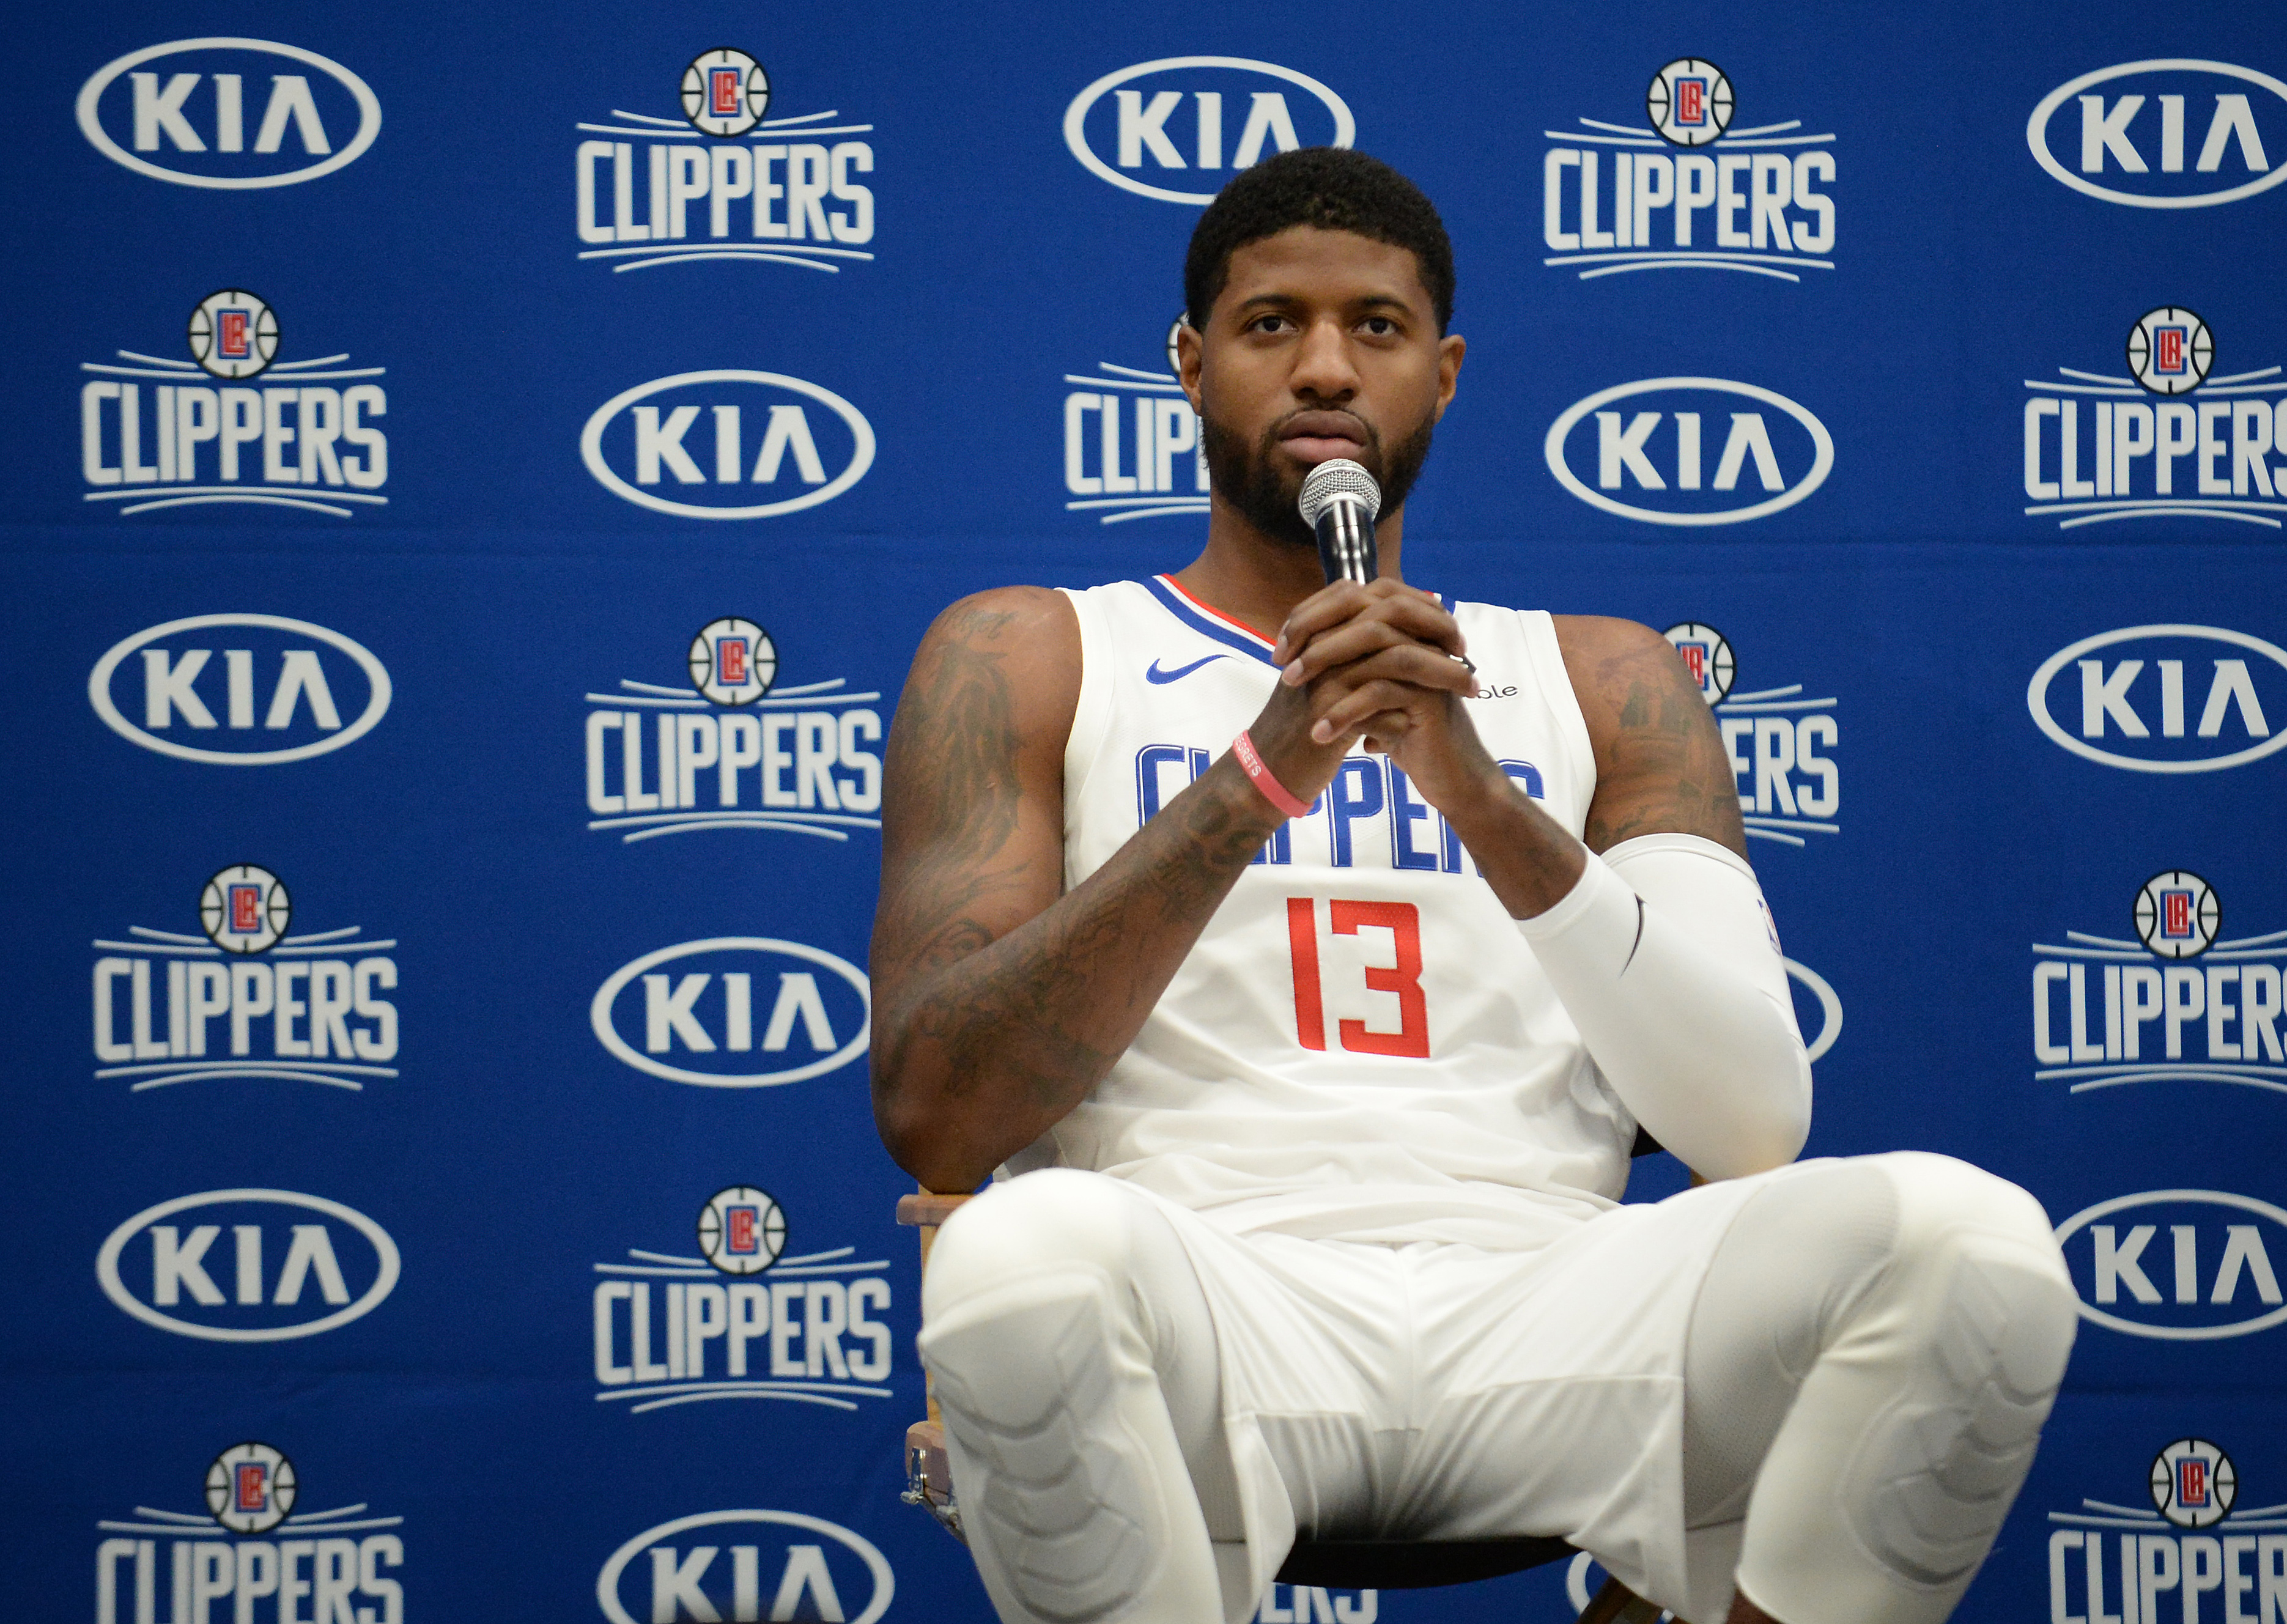 Paul George set to make Clippers debut on Thursday against Pelicans